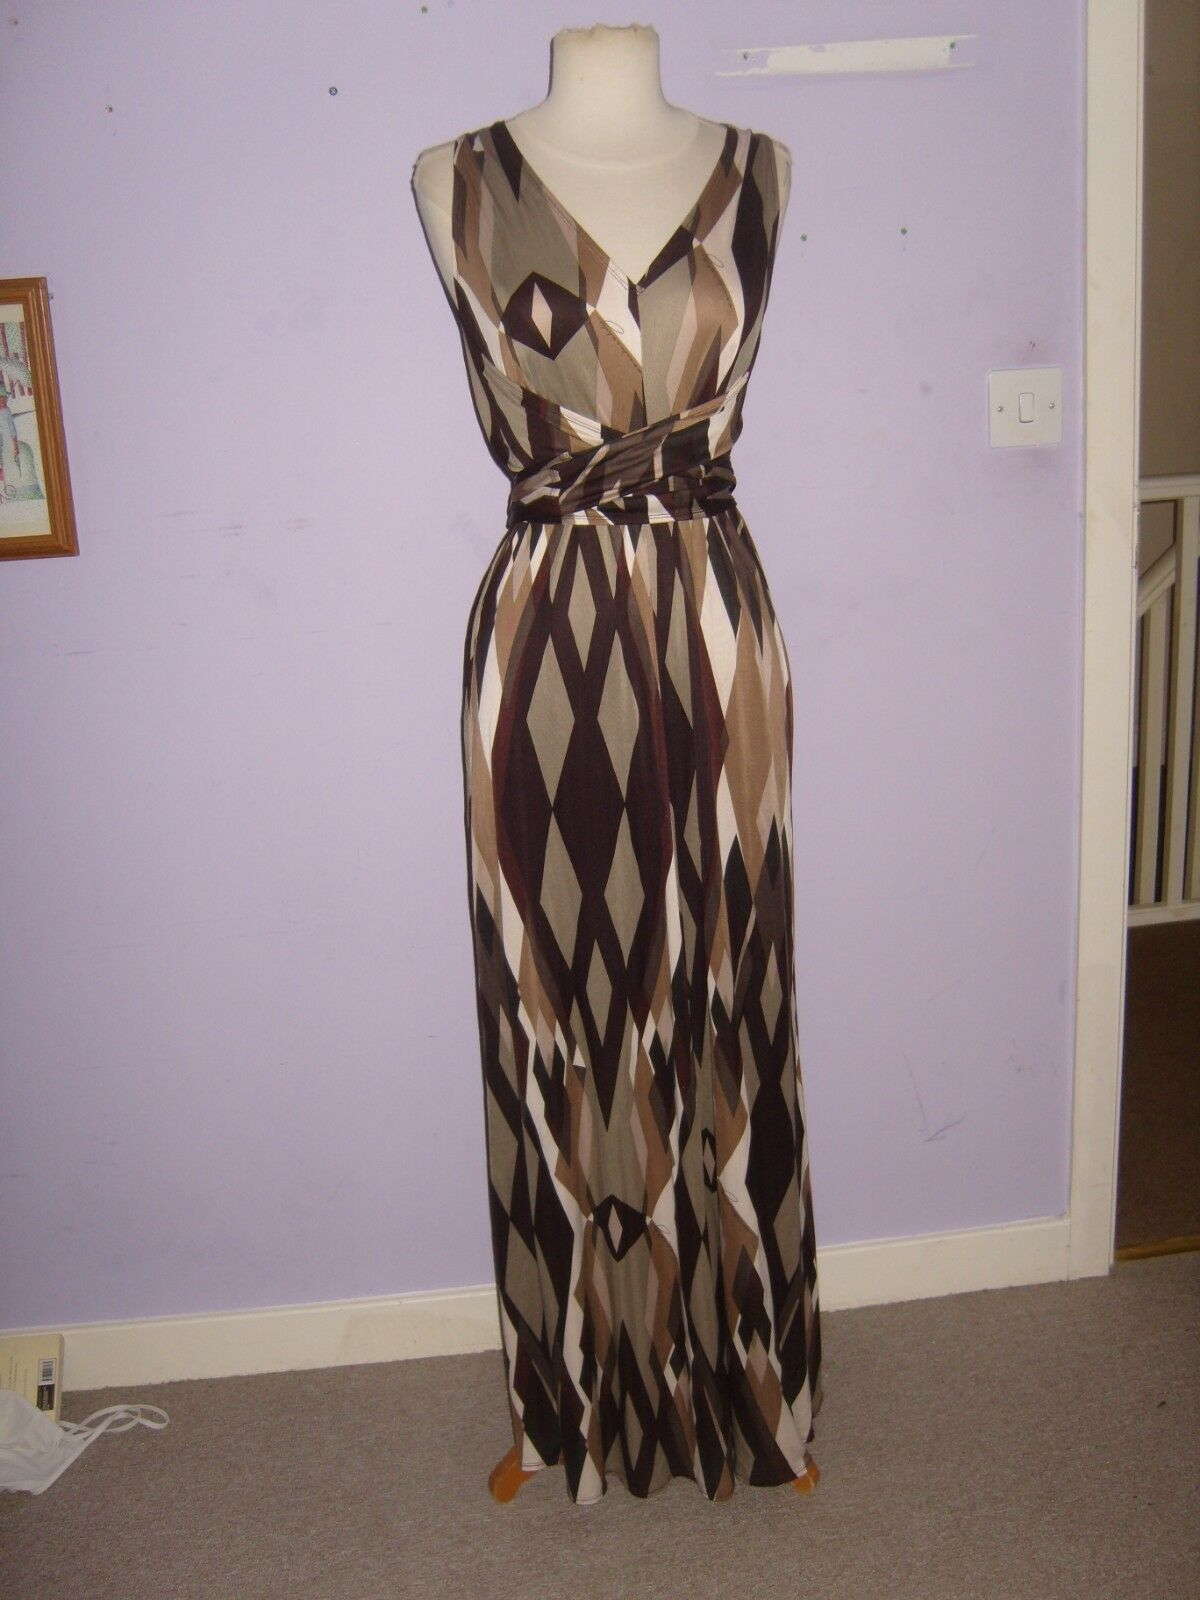 RARE OOAK AMANDA WAKELY SILK GEOMETRIC SIGNED JERSEY EVENING MAXI DRESS 10-12-14